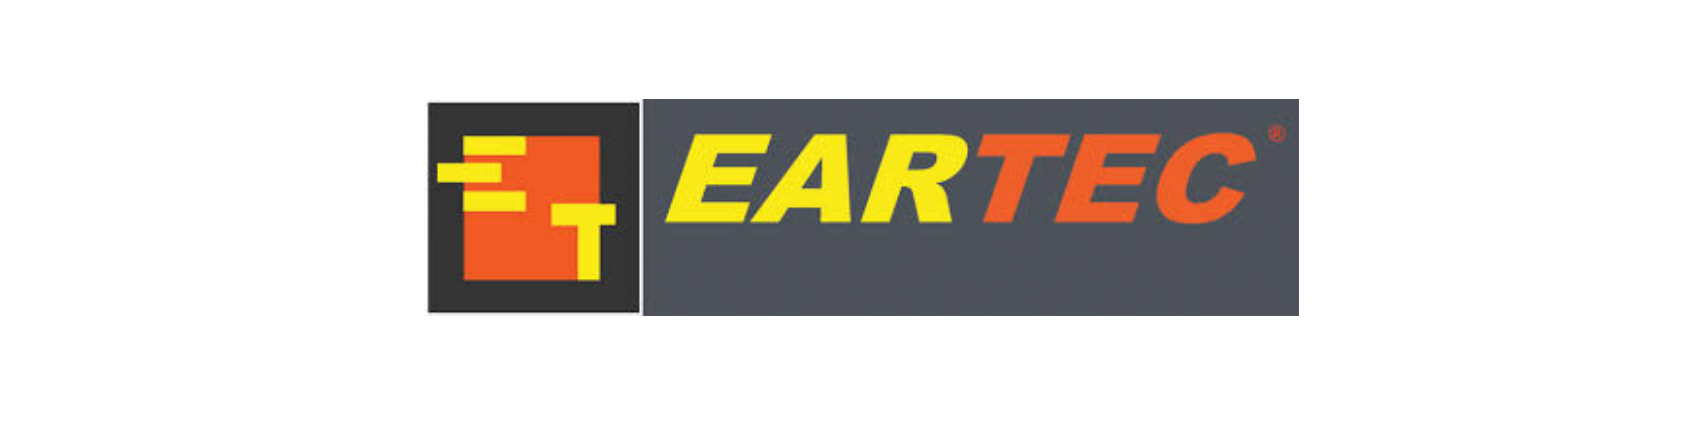 EARTEC LOGO CATTS CAMERA